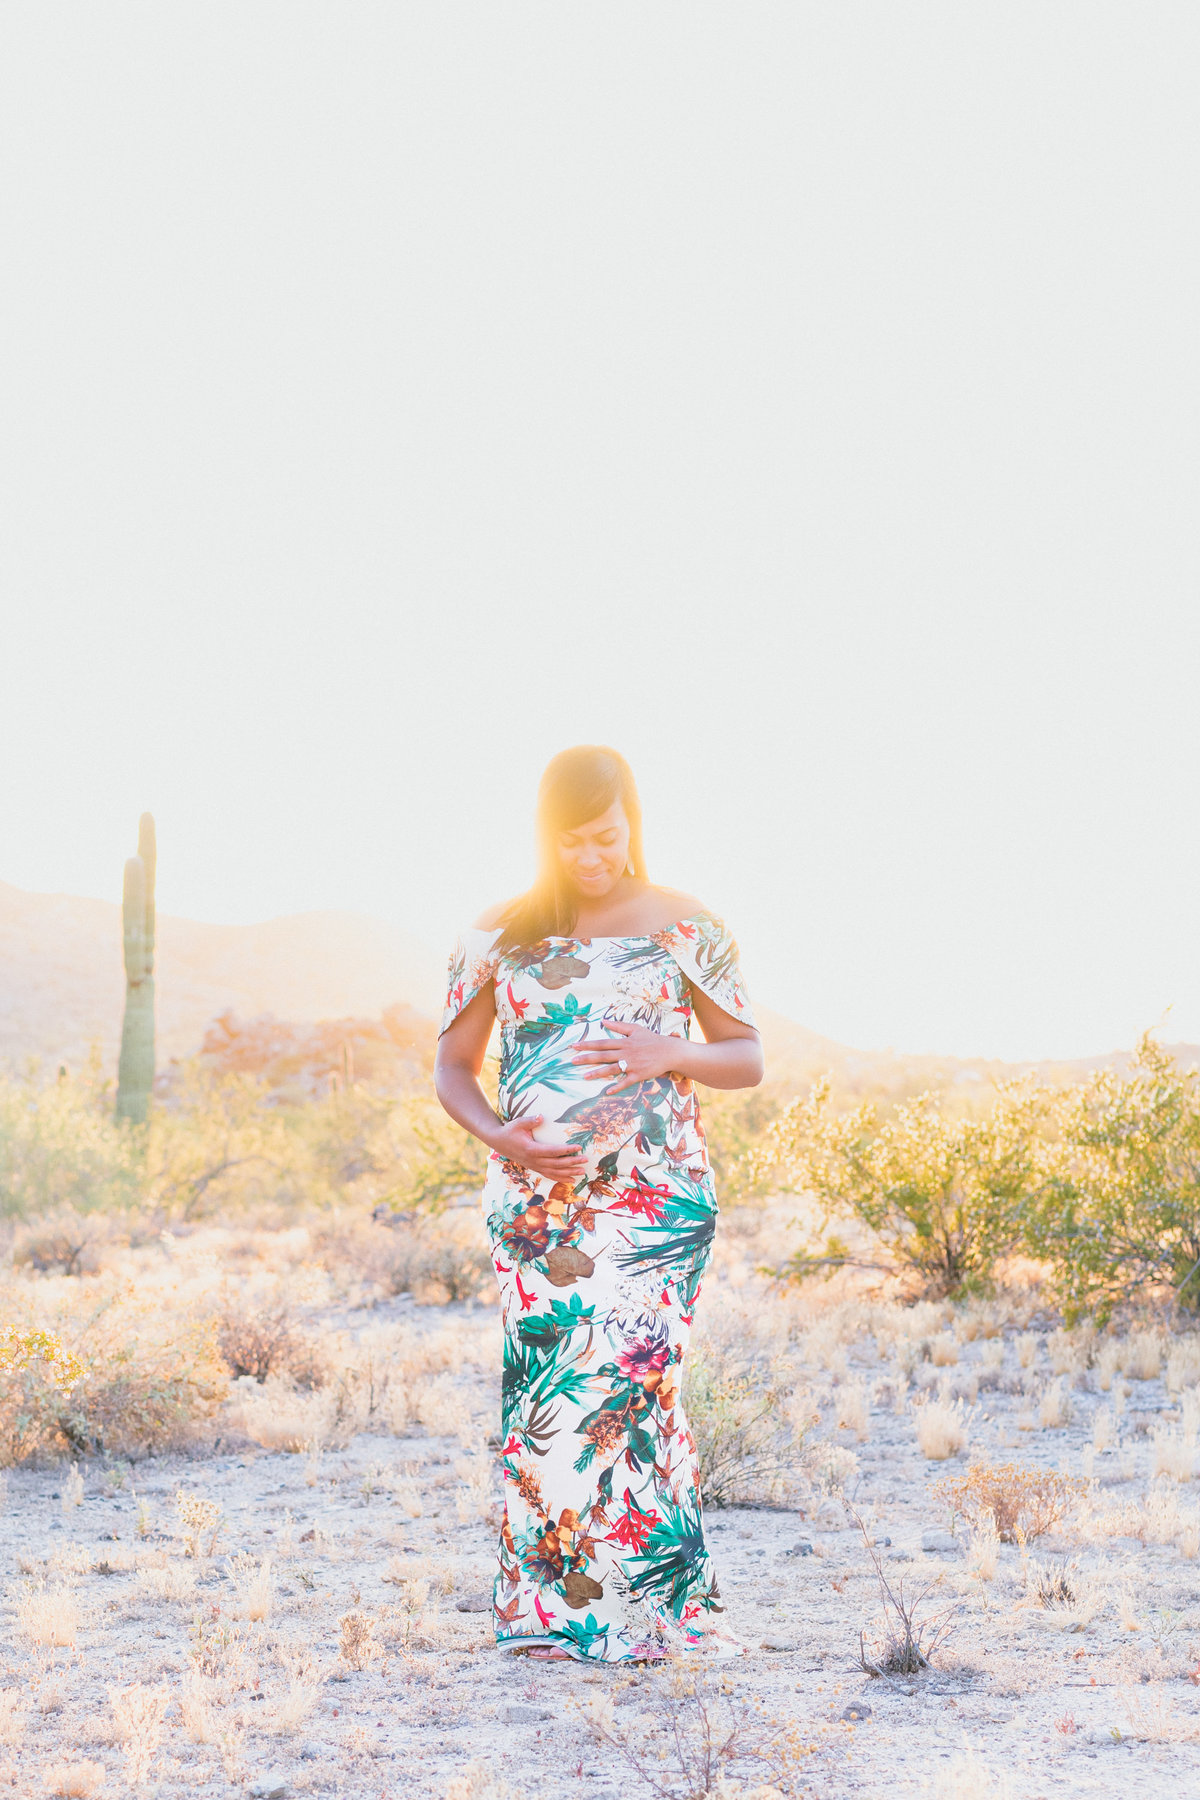 Atlas Rose Photography AZ The Russell Family Maternity Experience At South Mountain 71